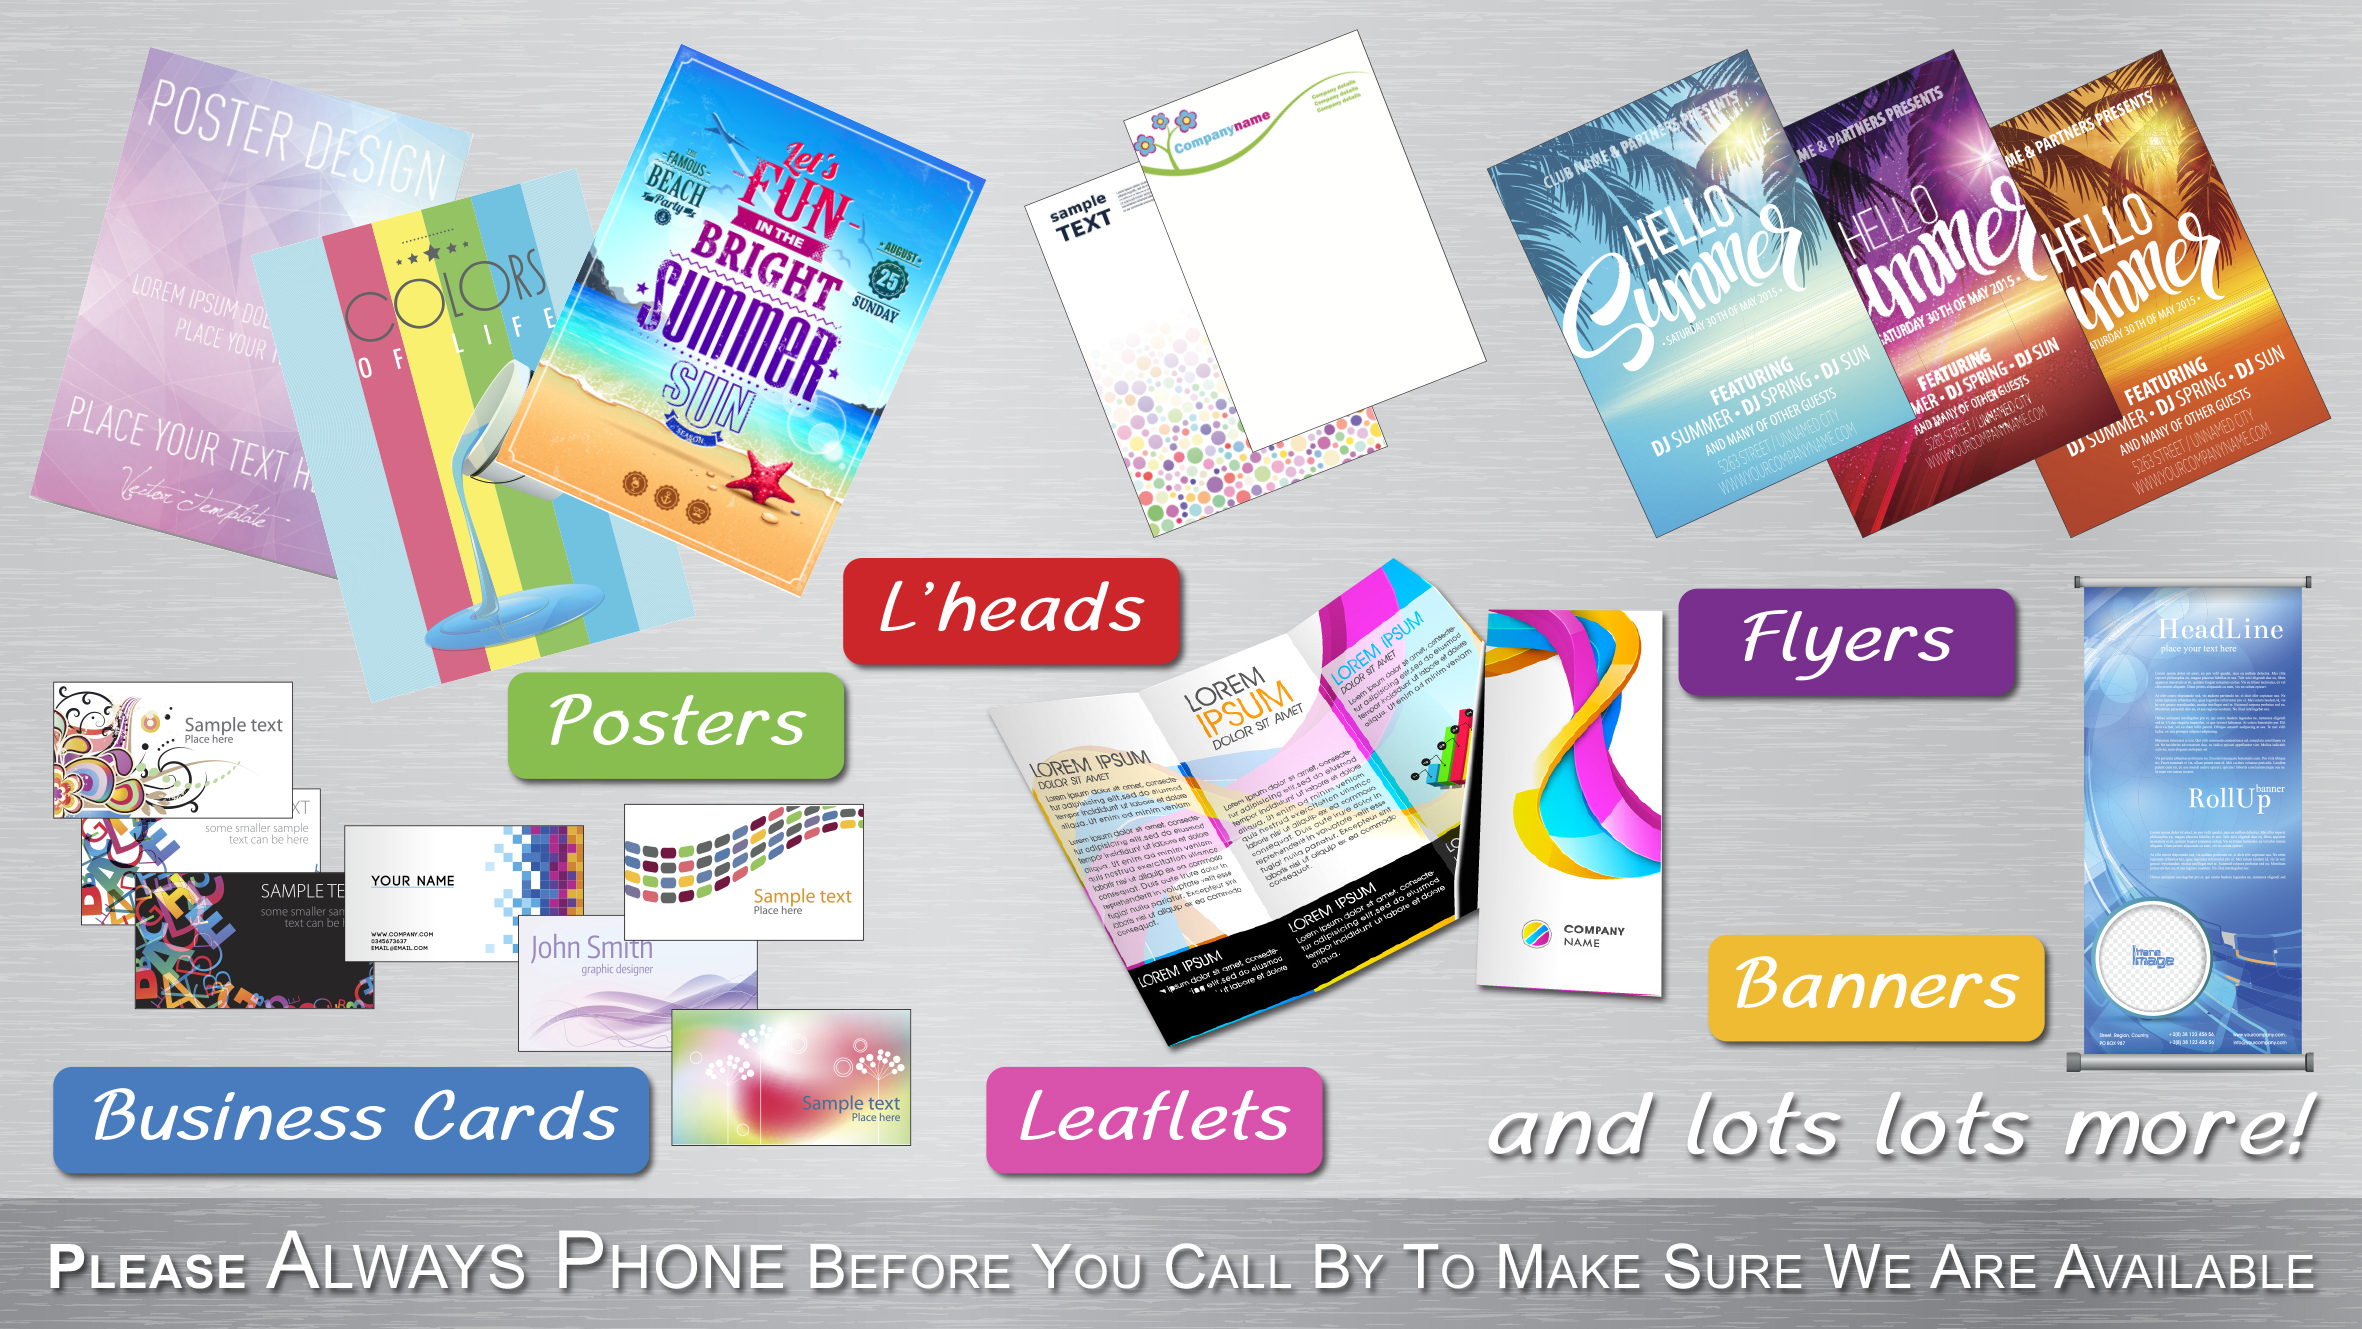 Catalogues certificates compliment slips a boards envelopes folders greeting cards invitations labels leaflets pvc banners magazines